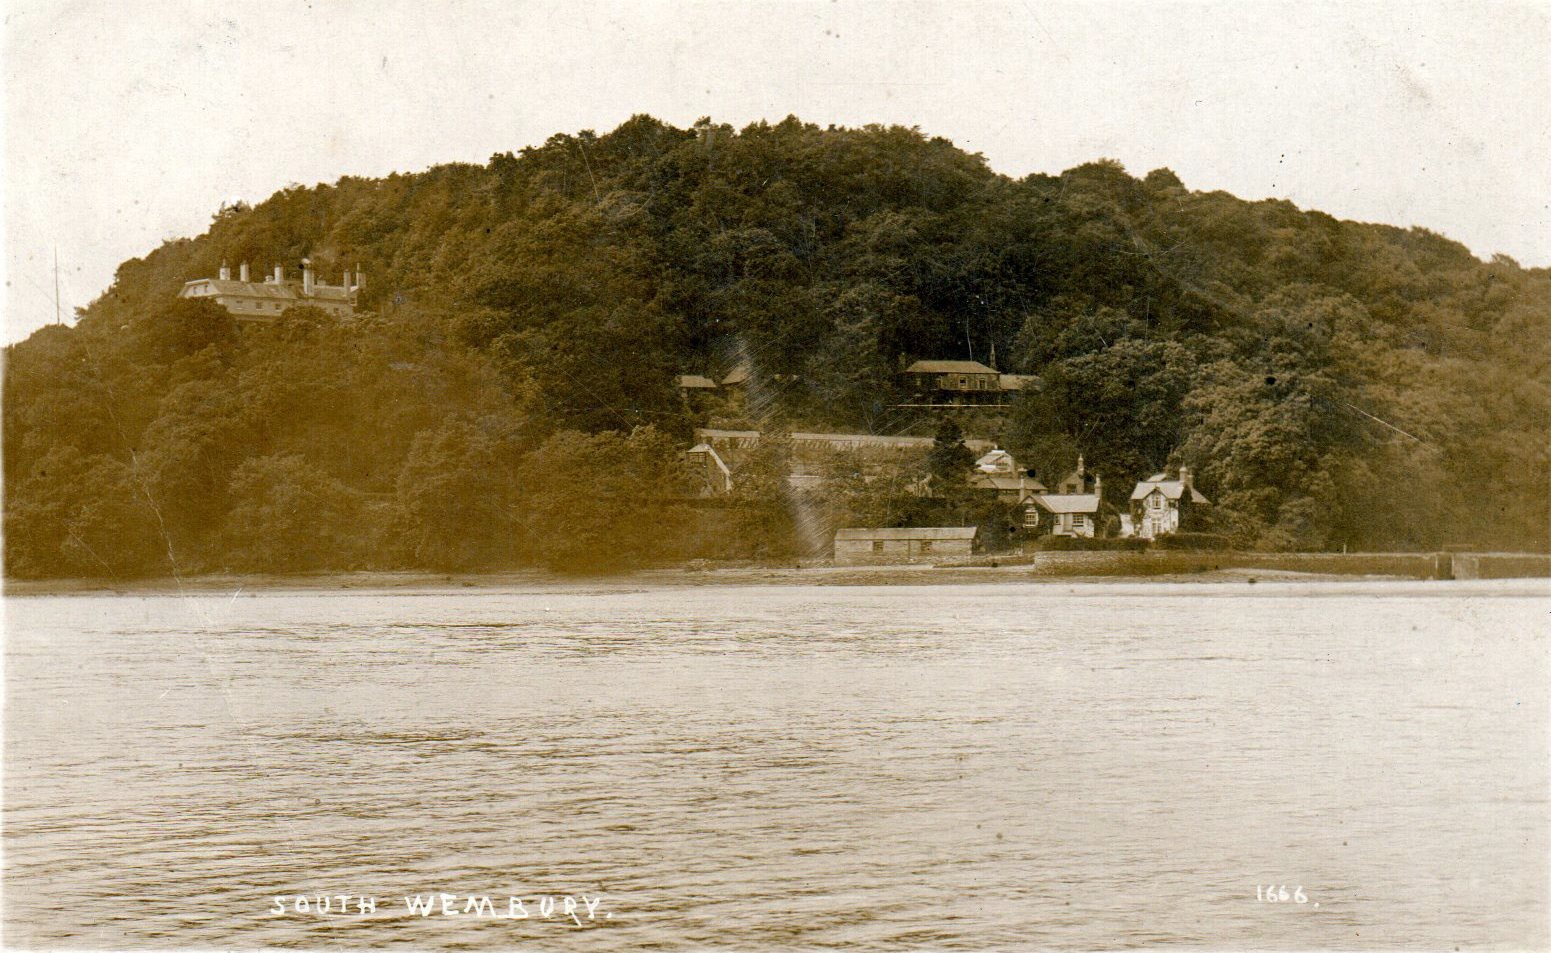 THORN FROM THE RIVER_1910s_postcard_1914_Thorn House, in isolation on the left_Fishpond Cottage and Boathouse Cottage